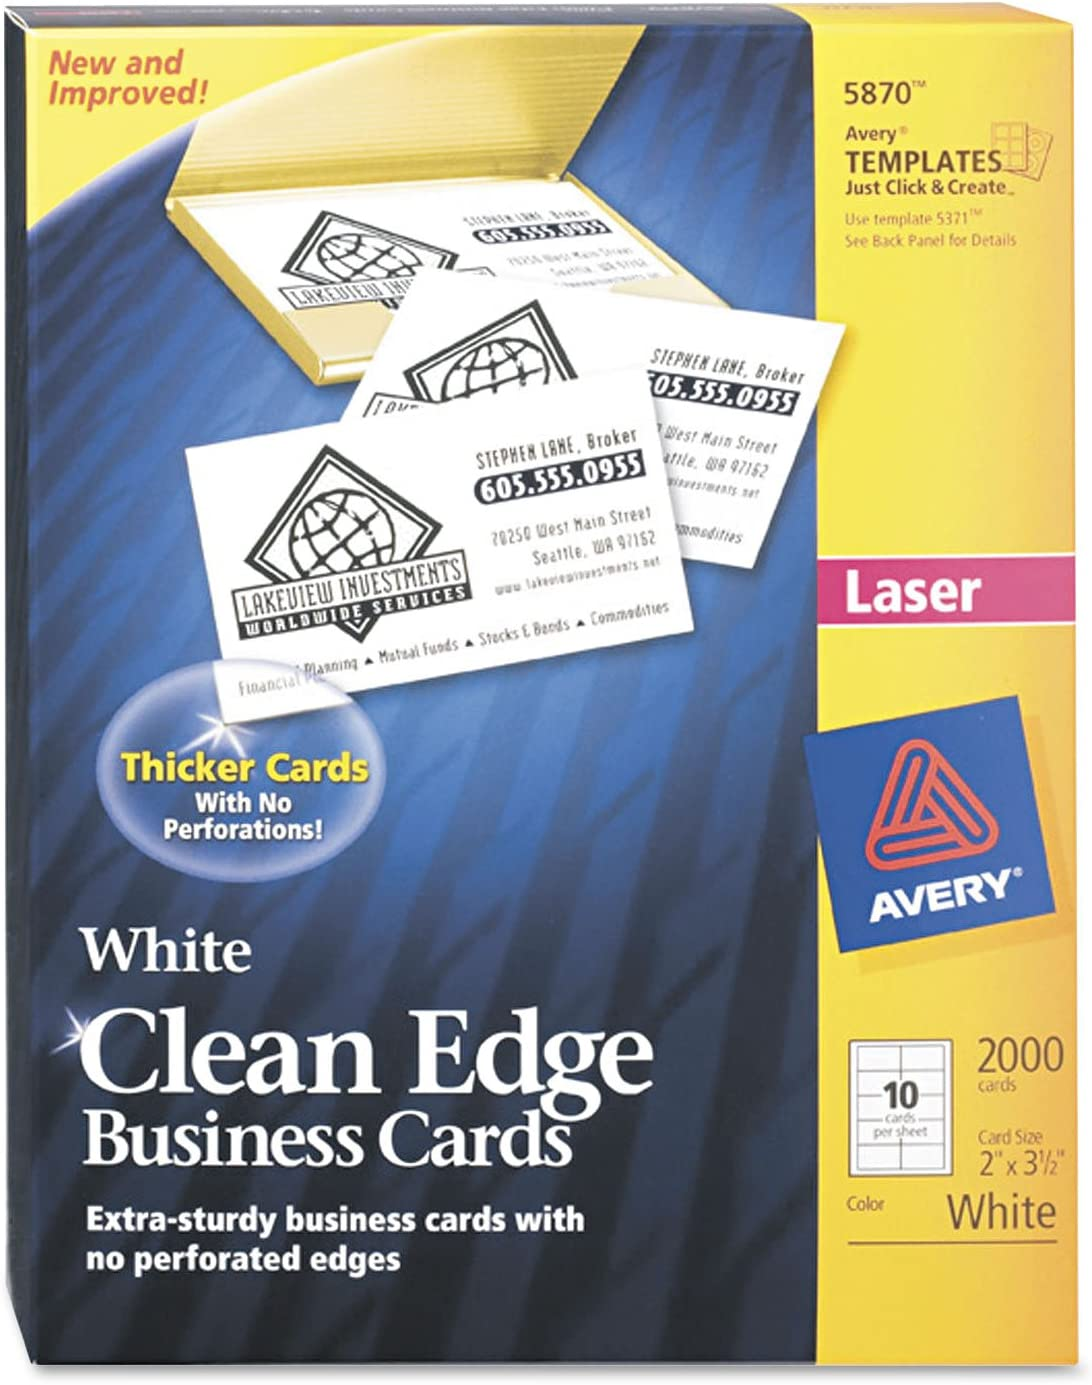 Avery Printable Business Cards, Laser Printers, 2,000 Cards, 2 x 3.5, Clean Edge (5870), White